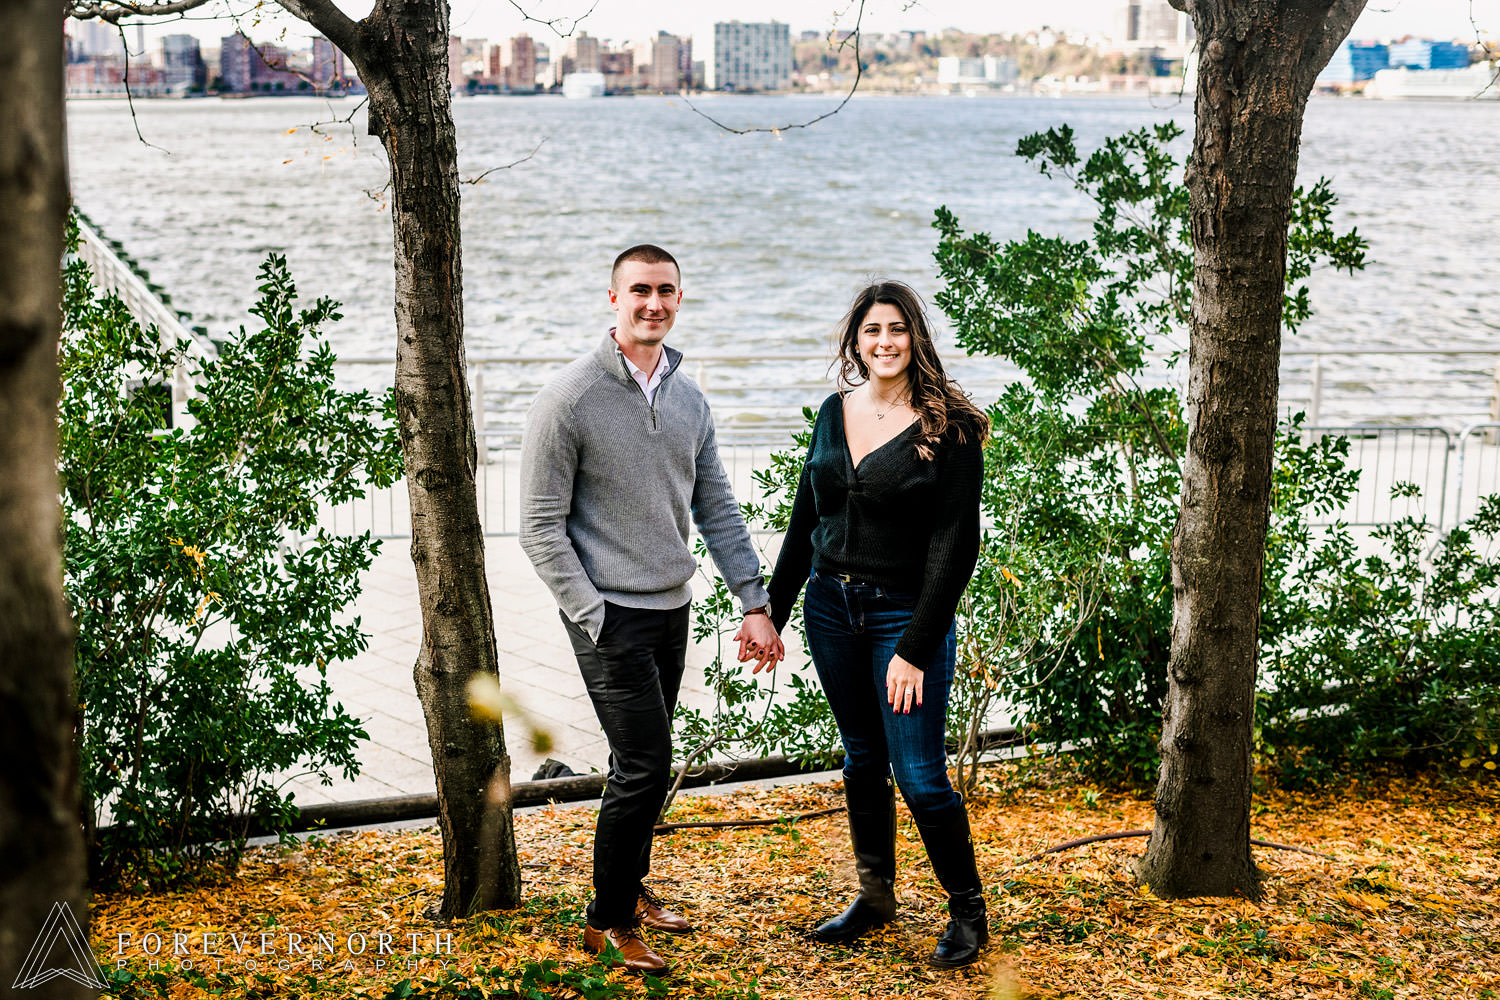 Cainero-Hudson-River-Park-Pier-62-New-York-Proposal-Engagement-Photographer-08.JPG